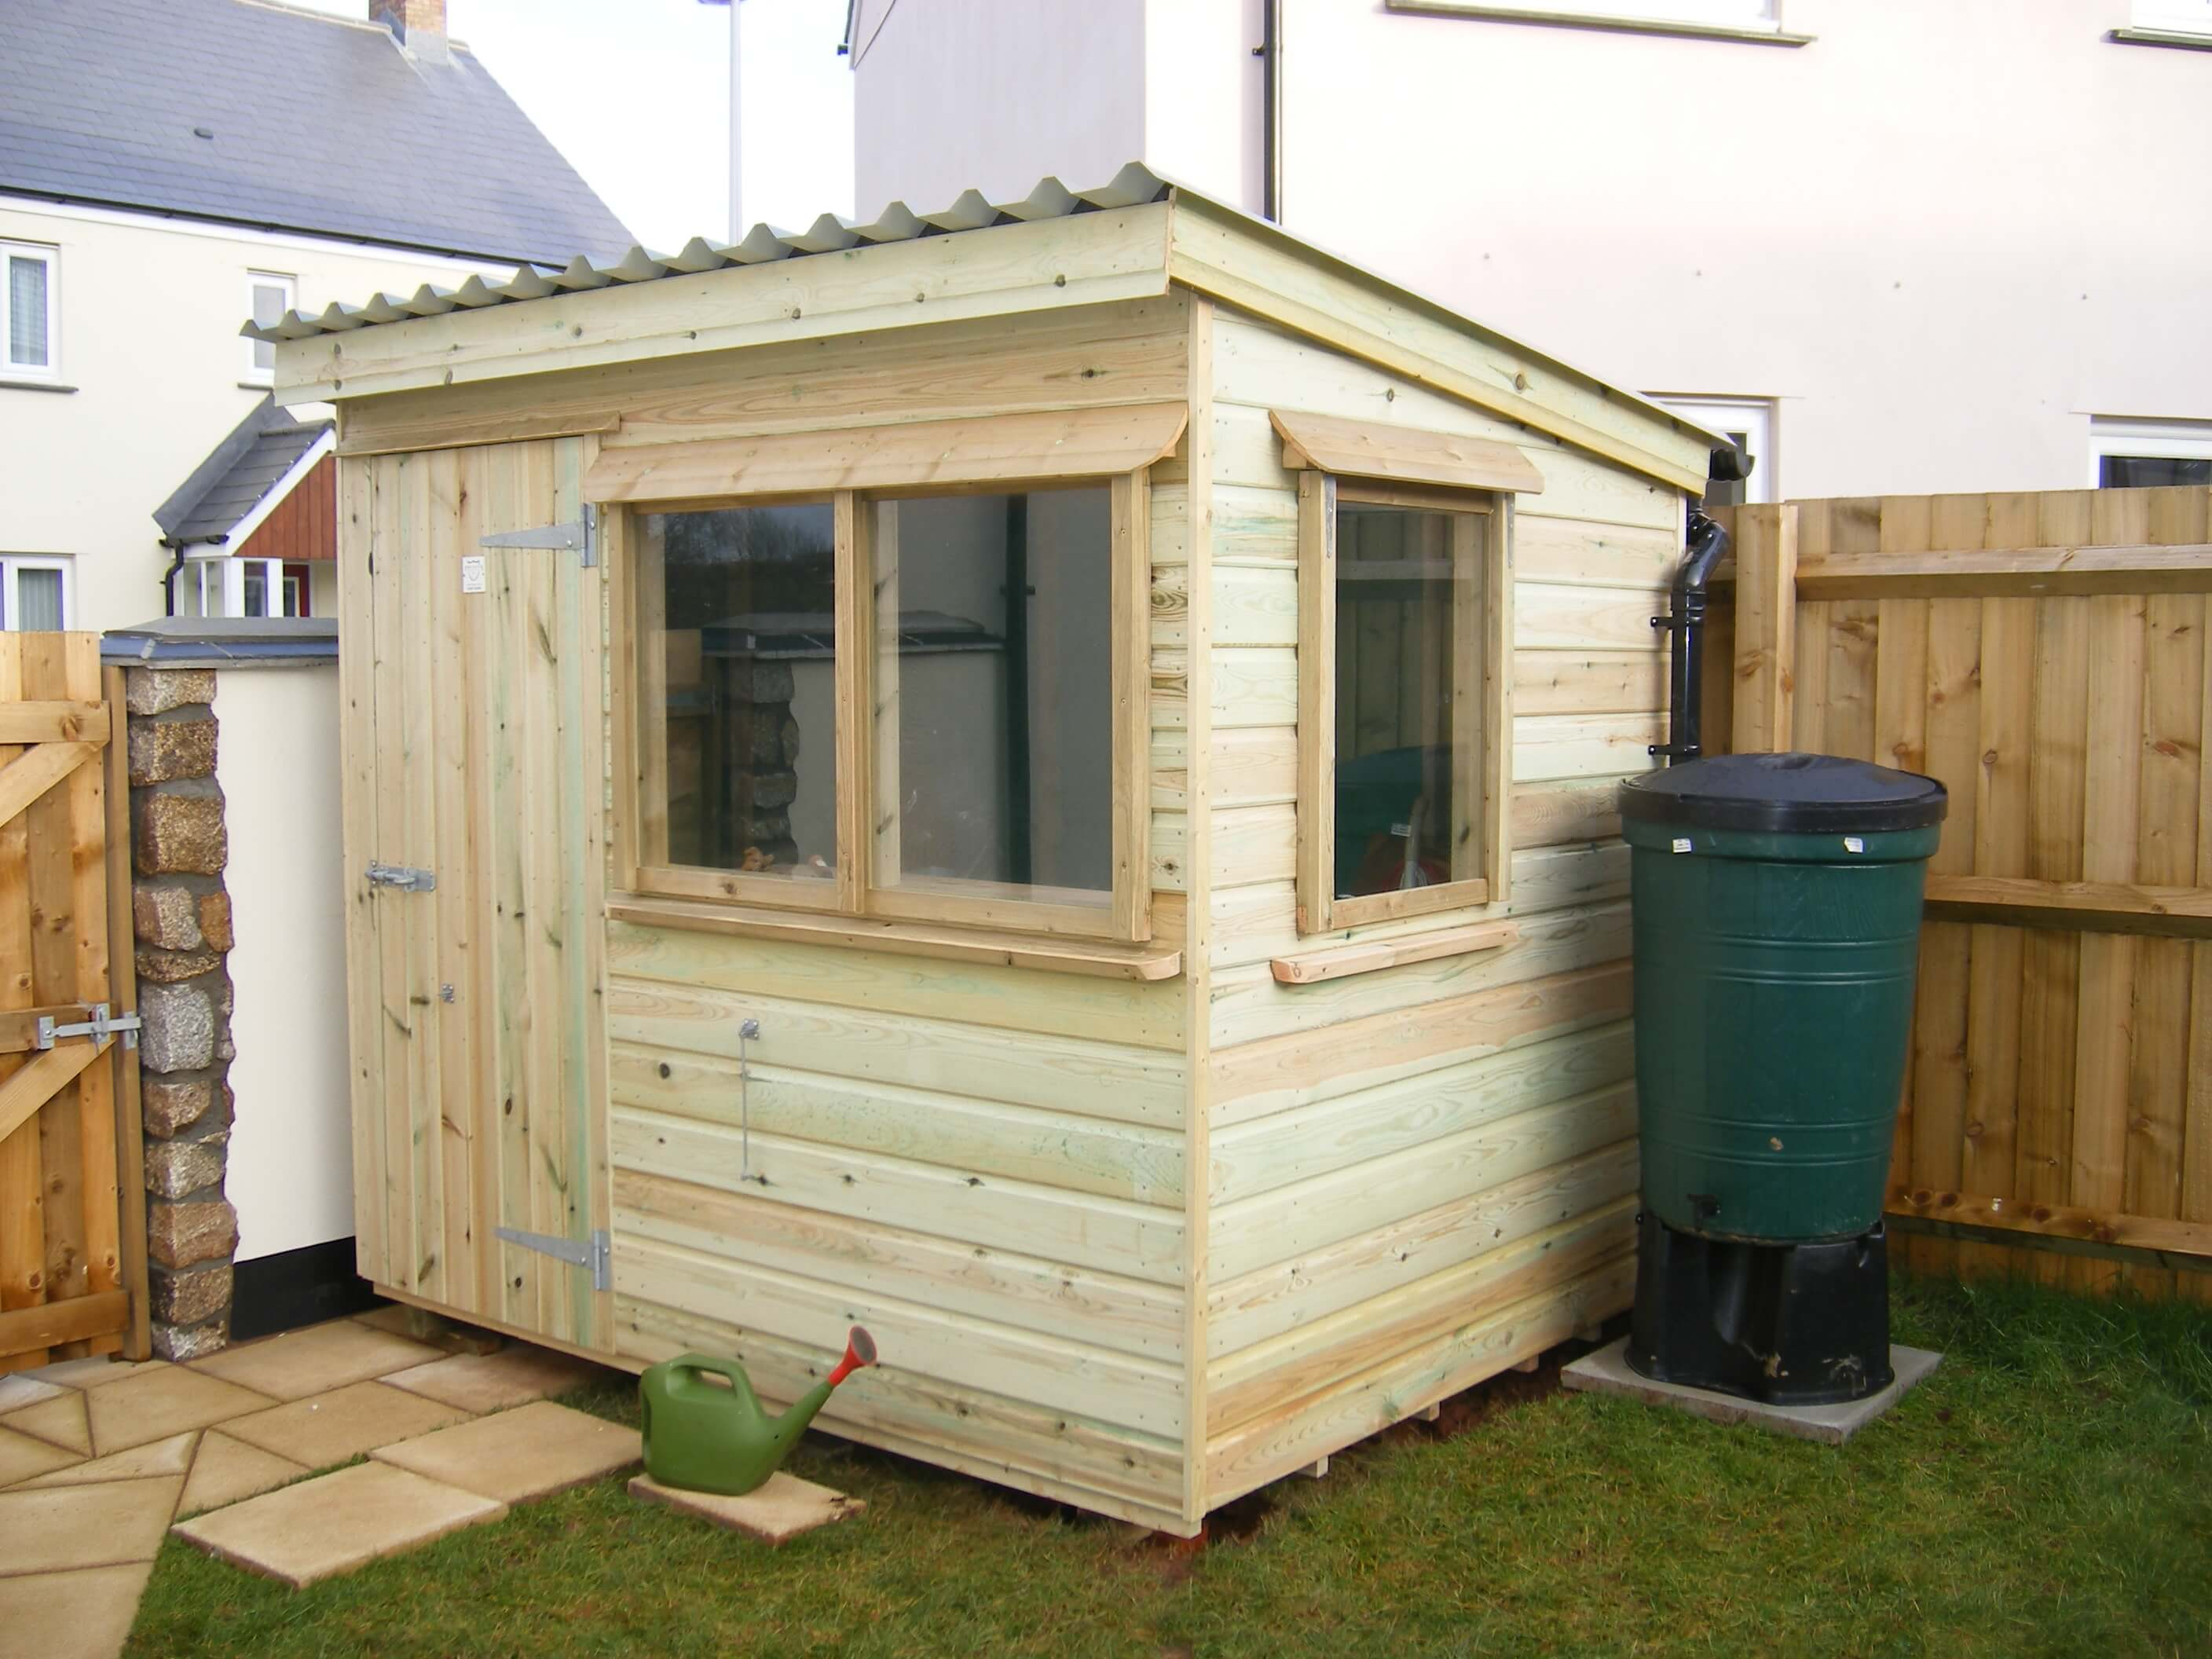 Bespoke garden shed with lean to roof and waterbutt